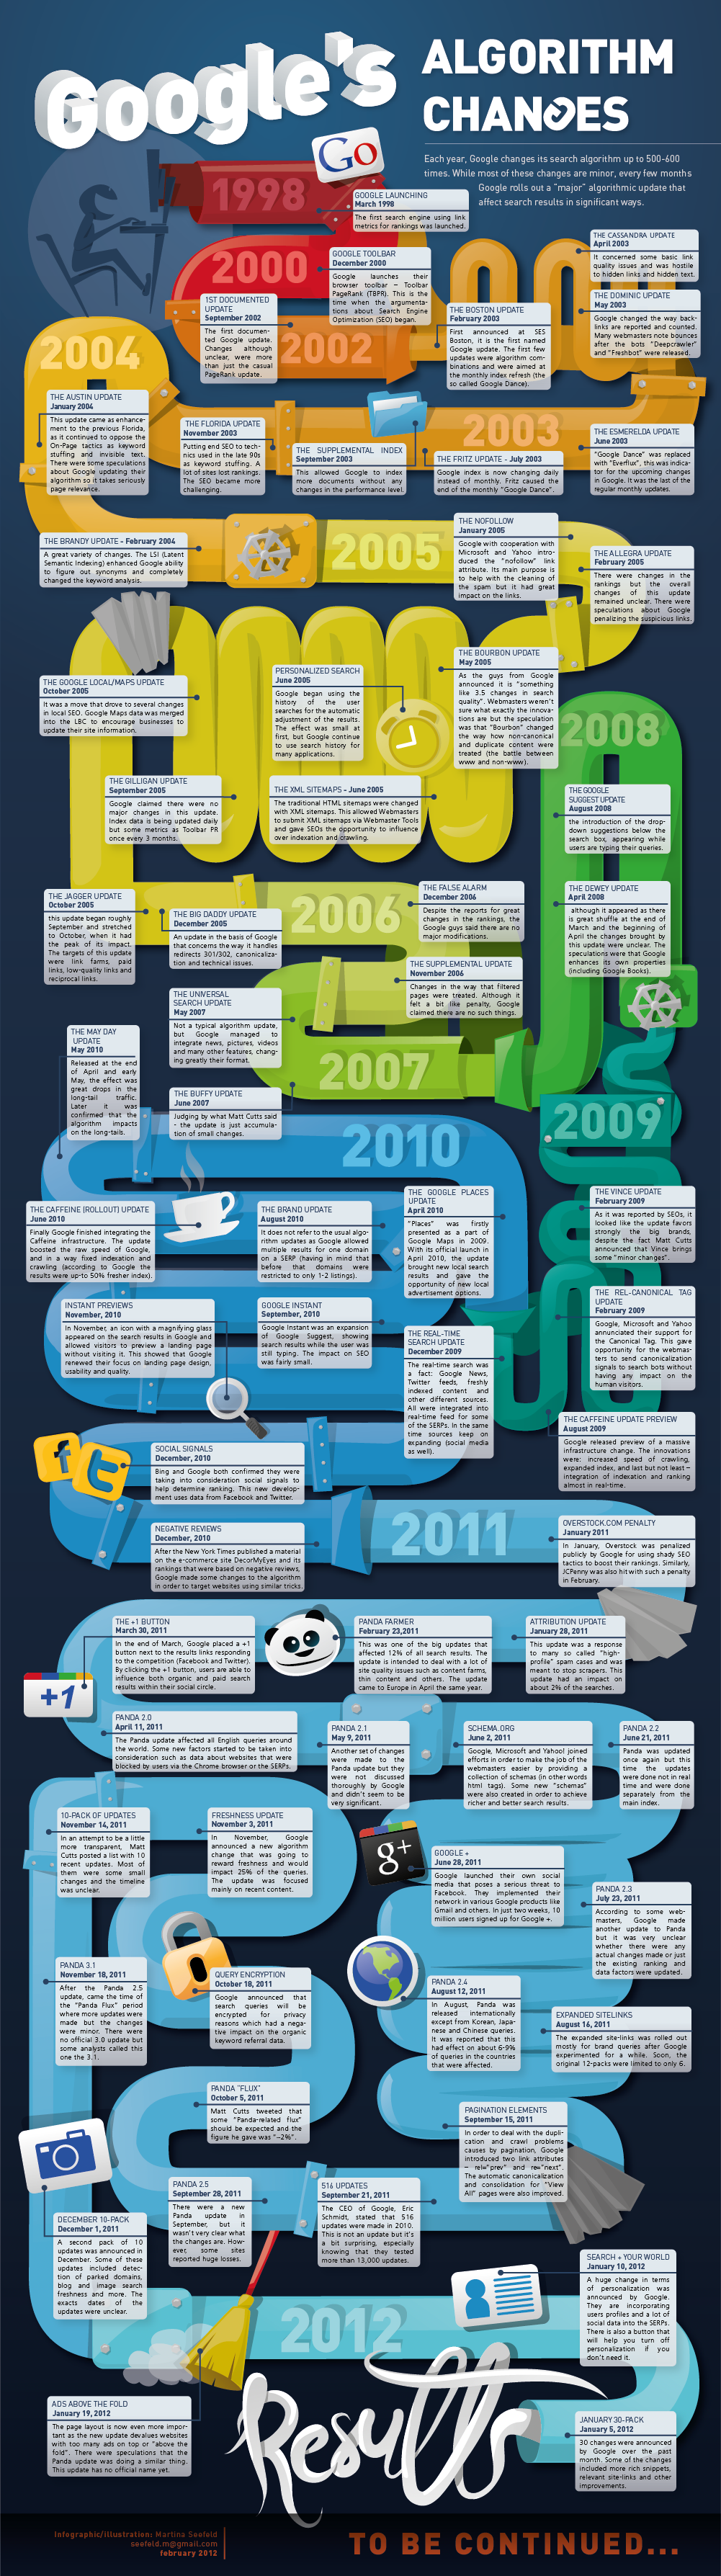 Google Algorithm Changes: An Infographic History | Virante Orange Juice